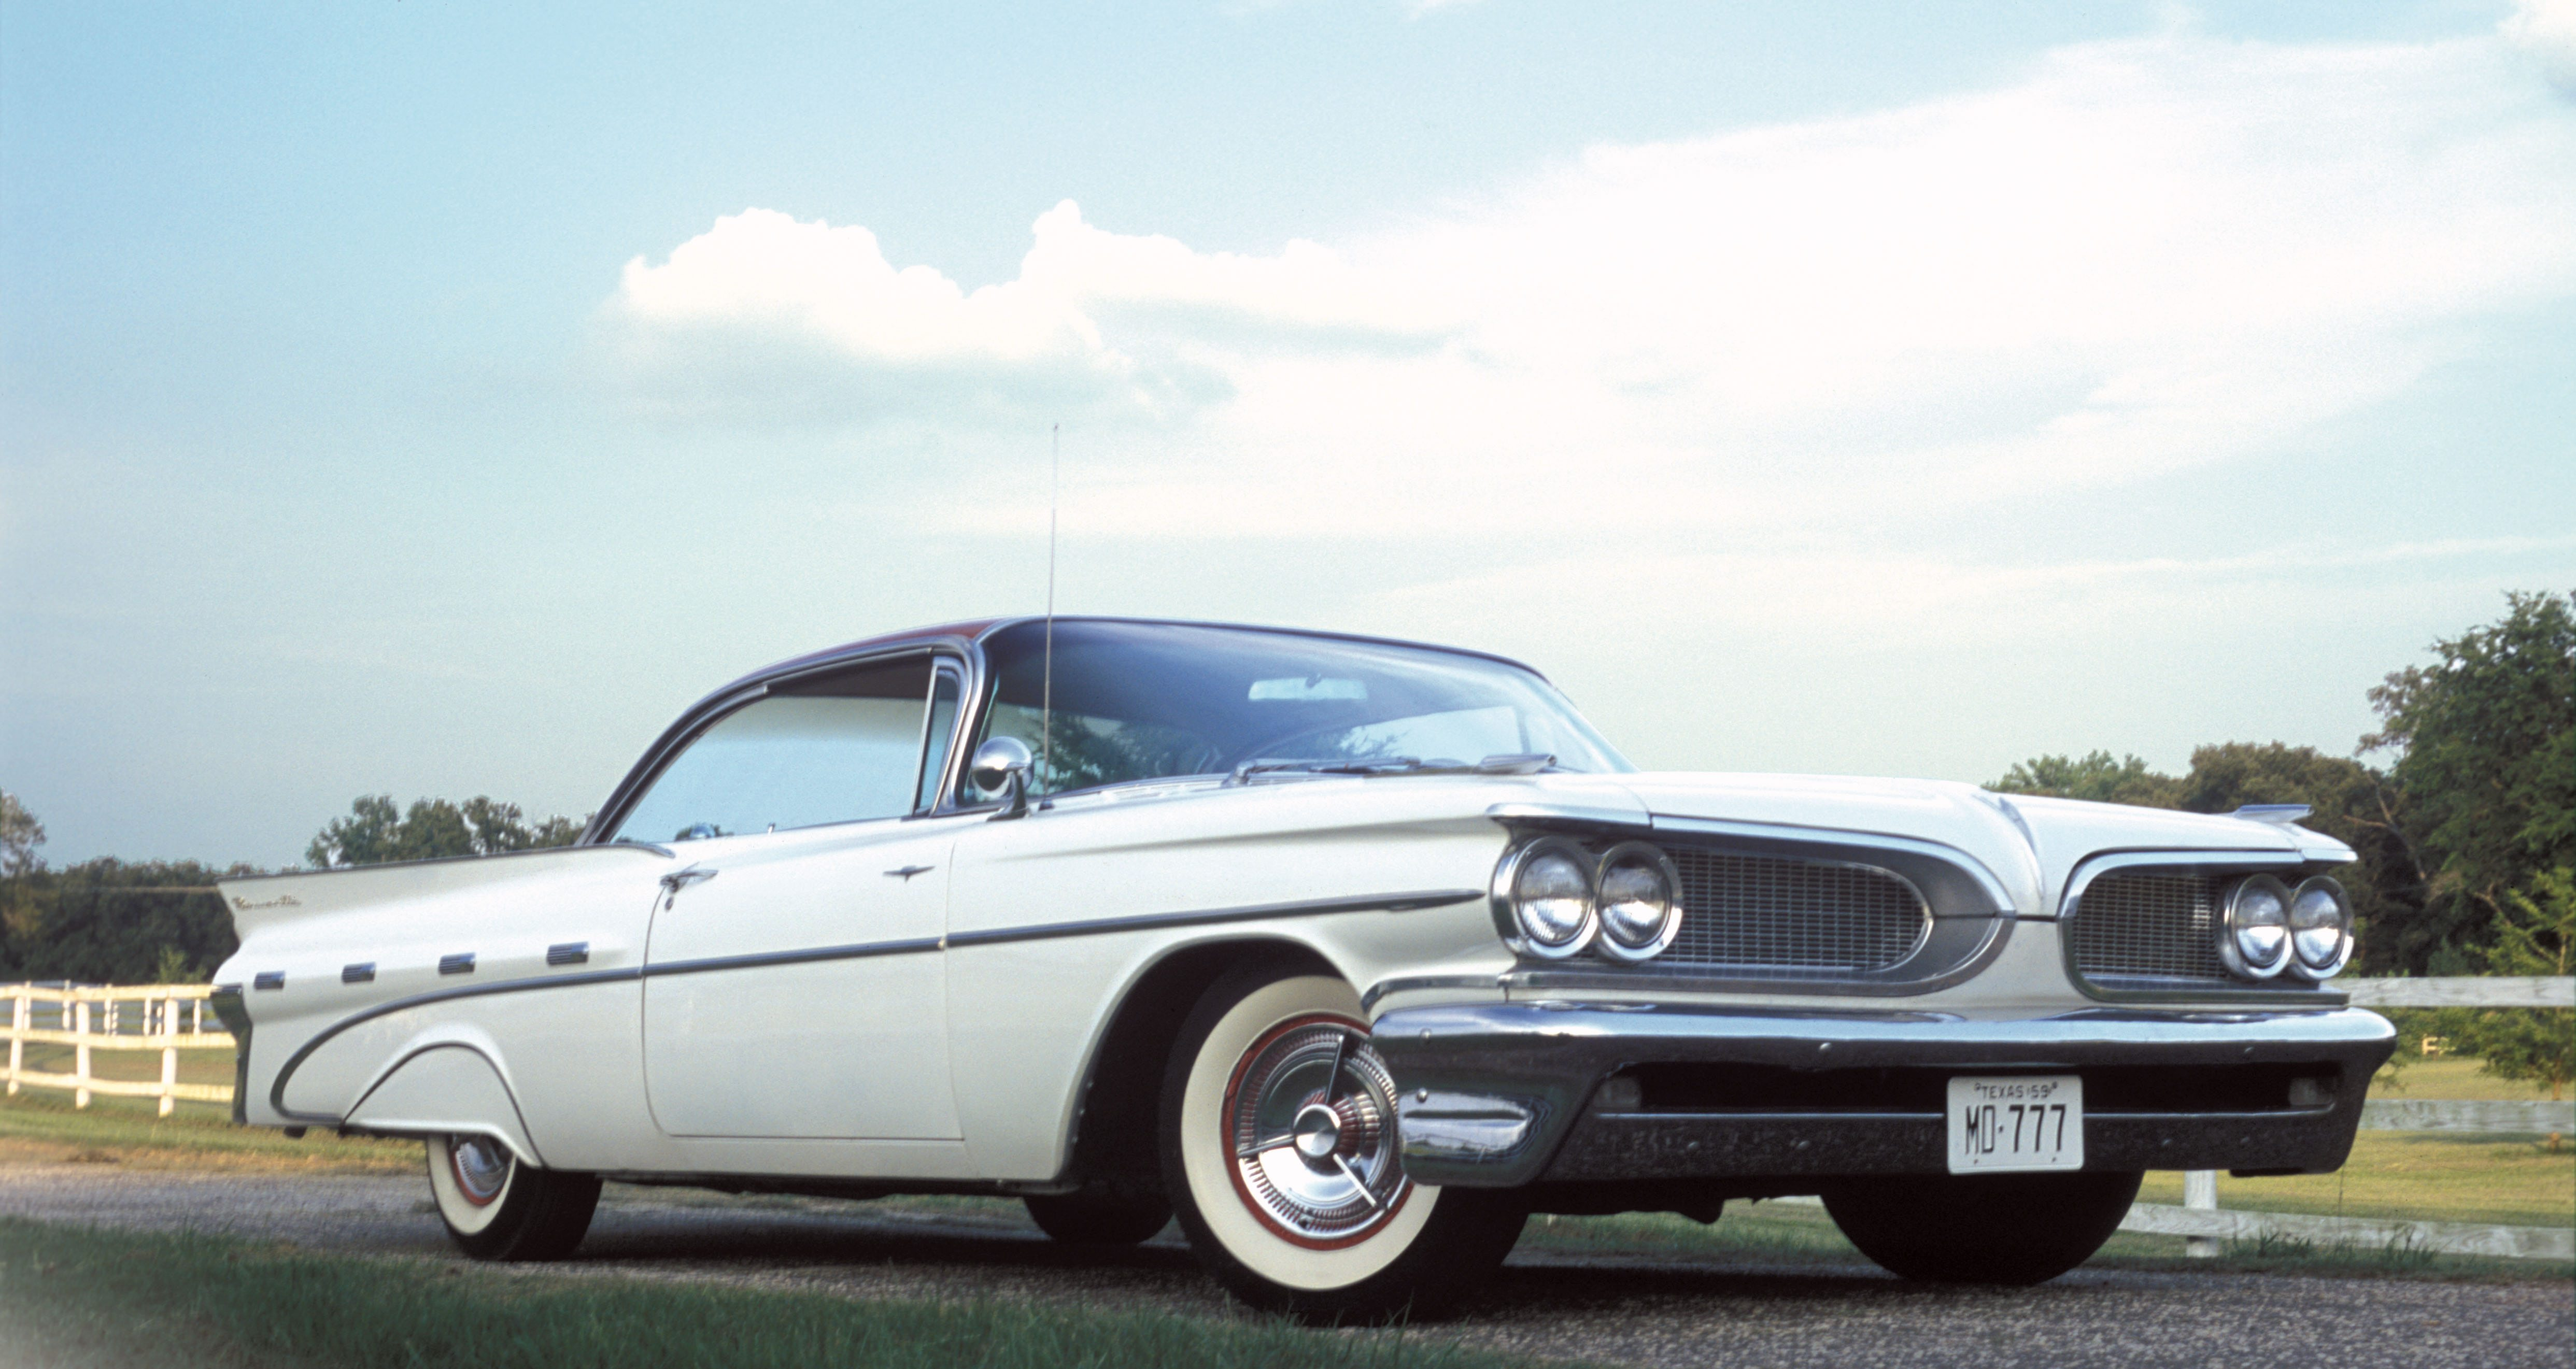 In 1958 pontiac dominated the daytona speedweeks trials but many car buyers were not impressed the styling of the 58 models were somewhat less